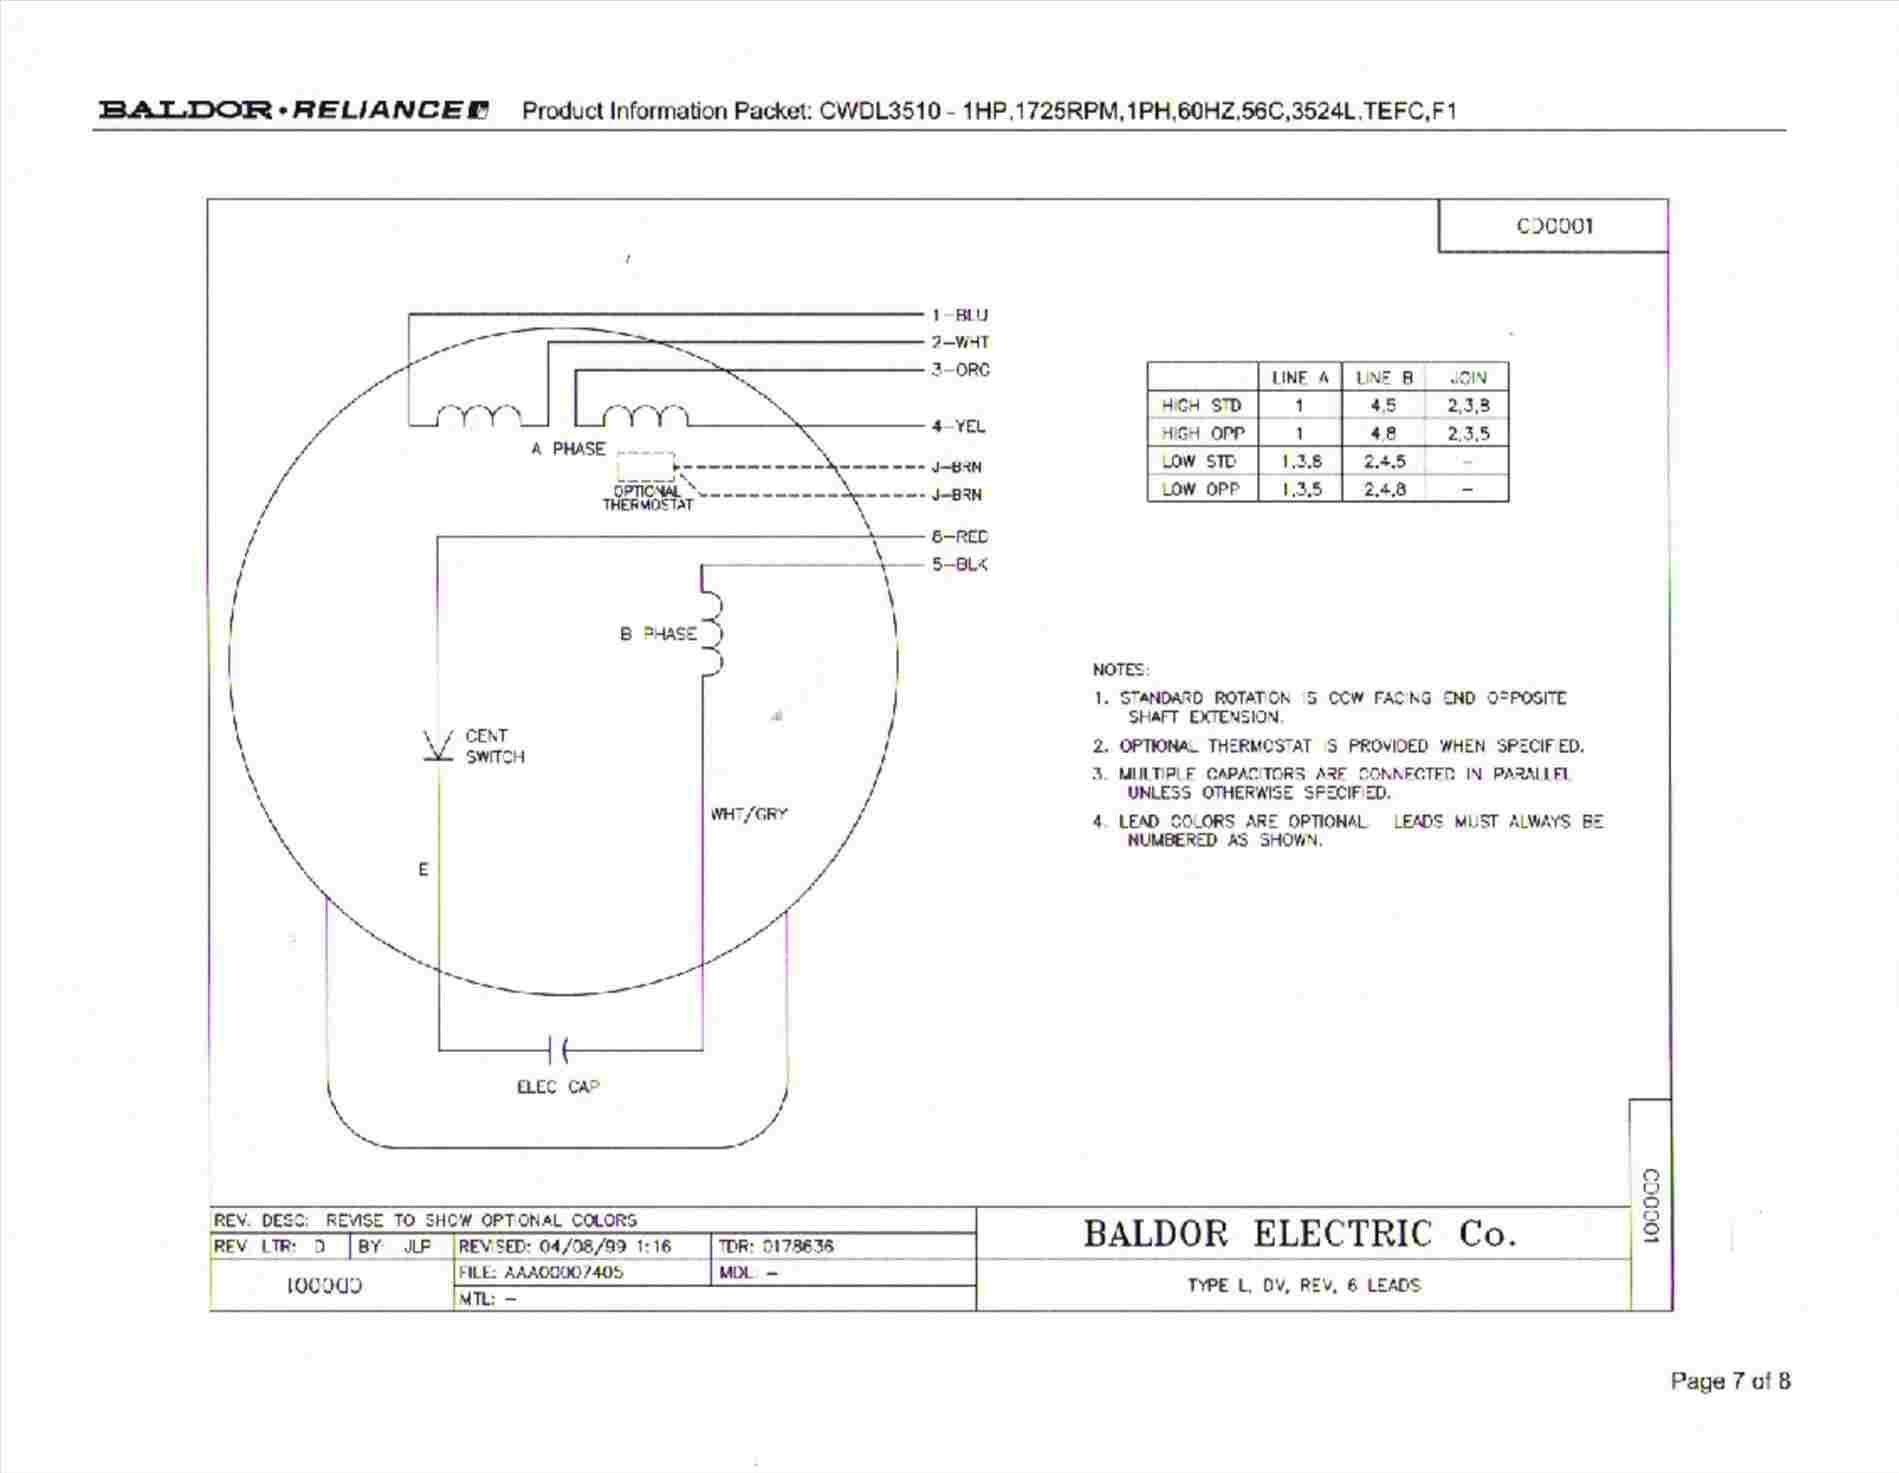 Wiring Diagram For 220 Volt Single Phase Motor Bookingritzcarlton Info Electrical Circuit Diagram Diagram Diagram Chart